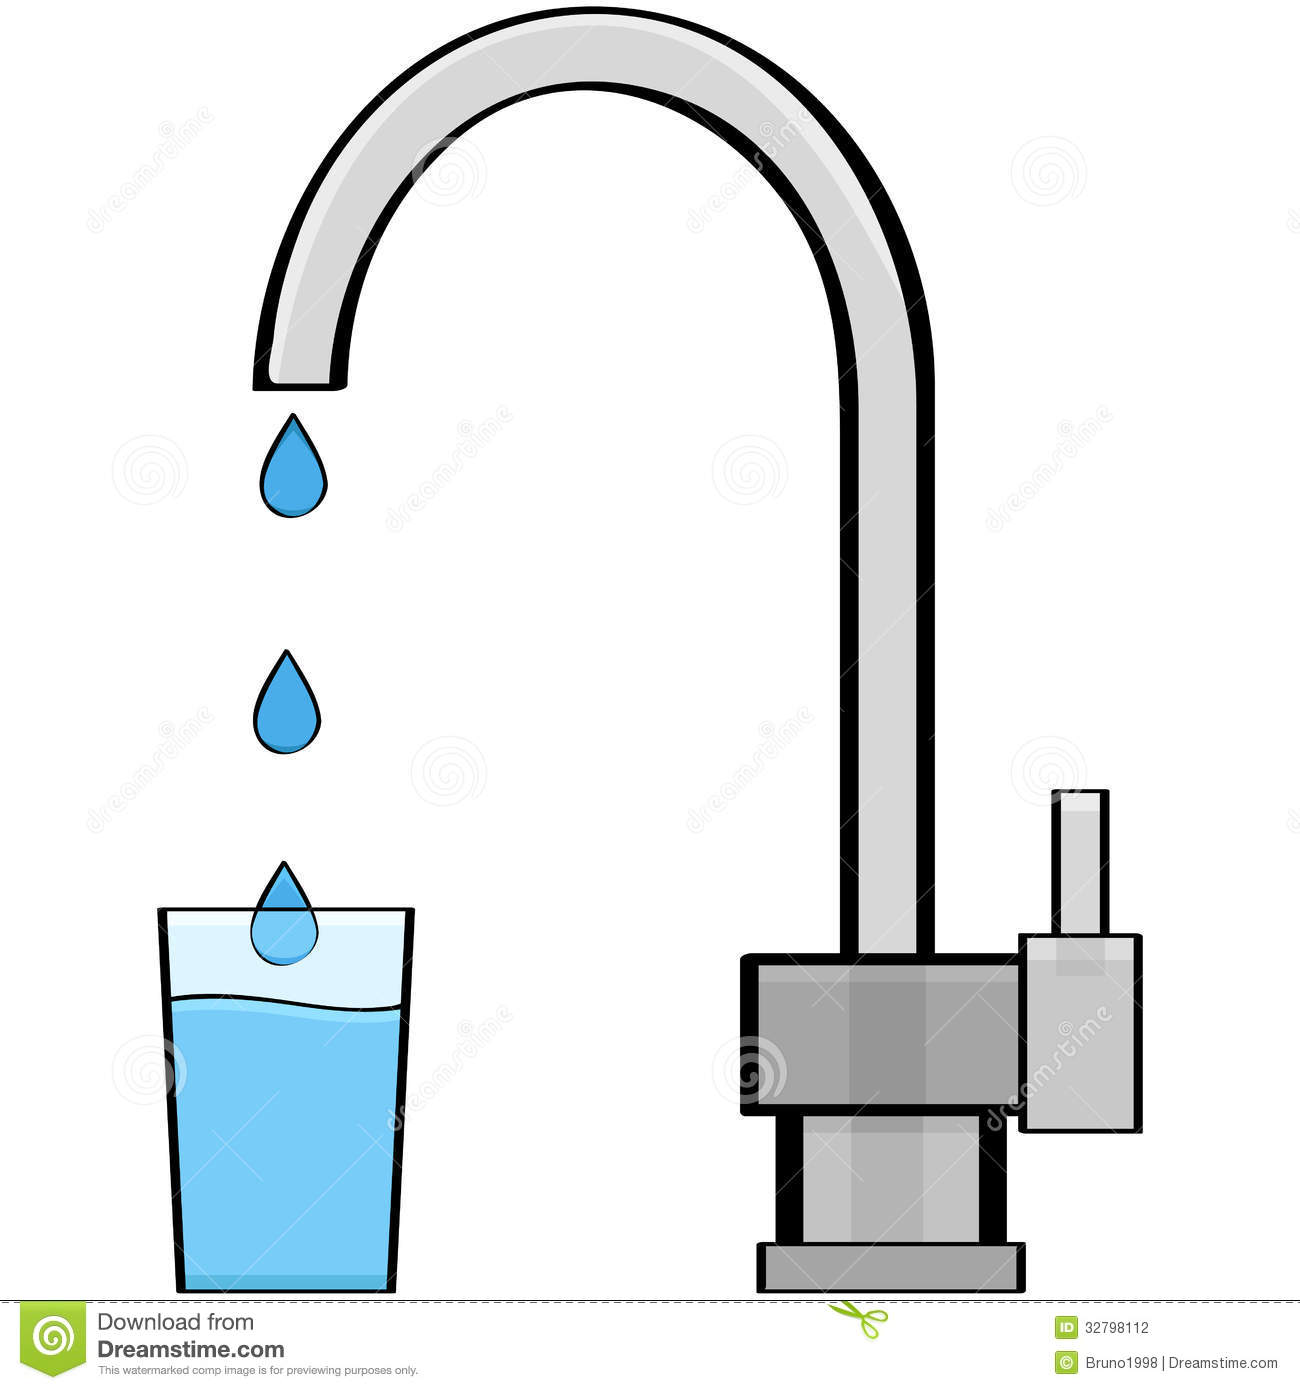 Drinking Water Faucet >> Tap water stock vector. Illustration of drink, cartoon - 32798112